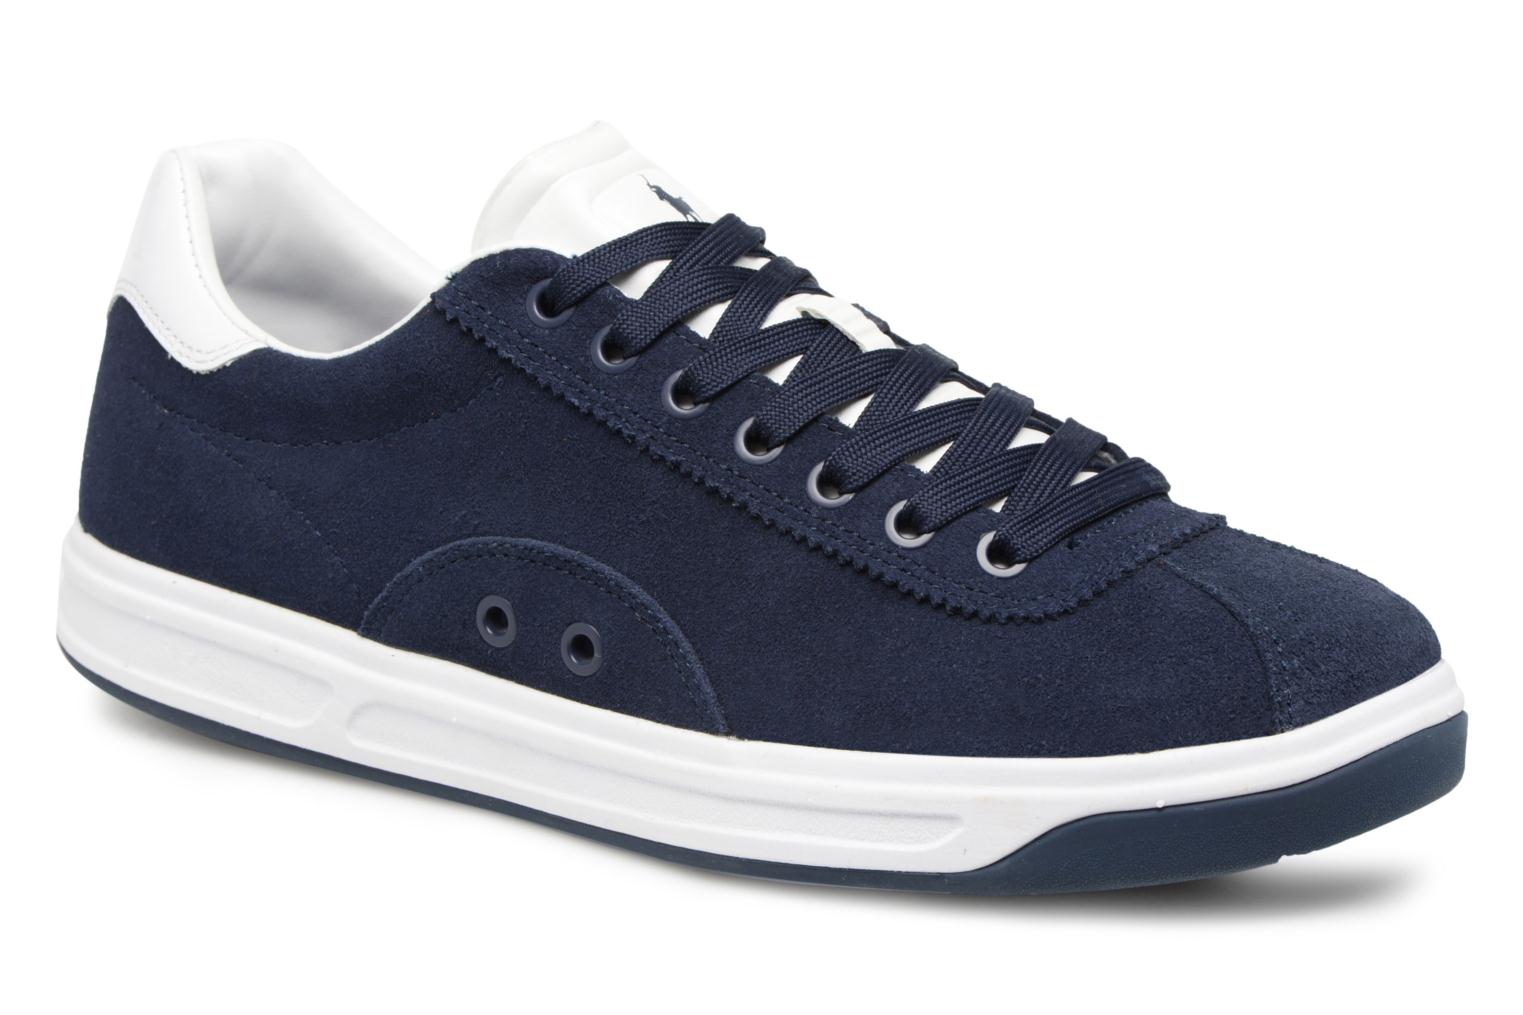 Marques Chaussure homme Polo Ralph Lauren homme Court100 Newport navy